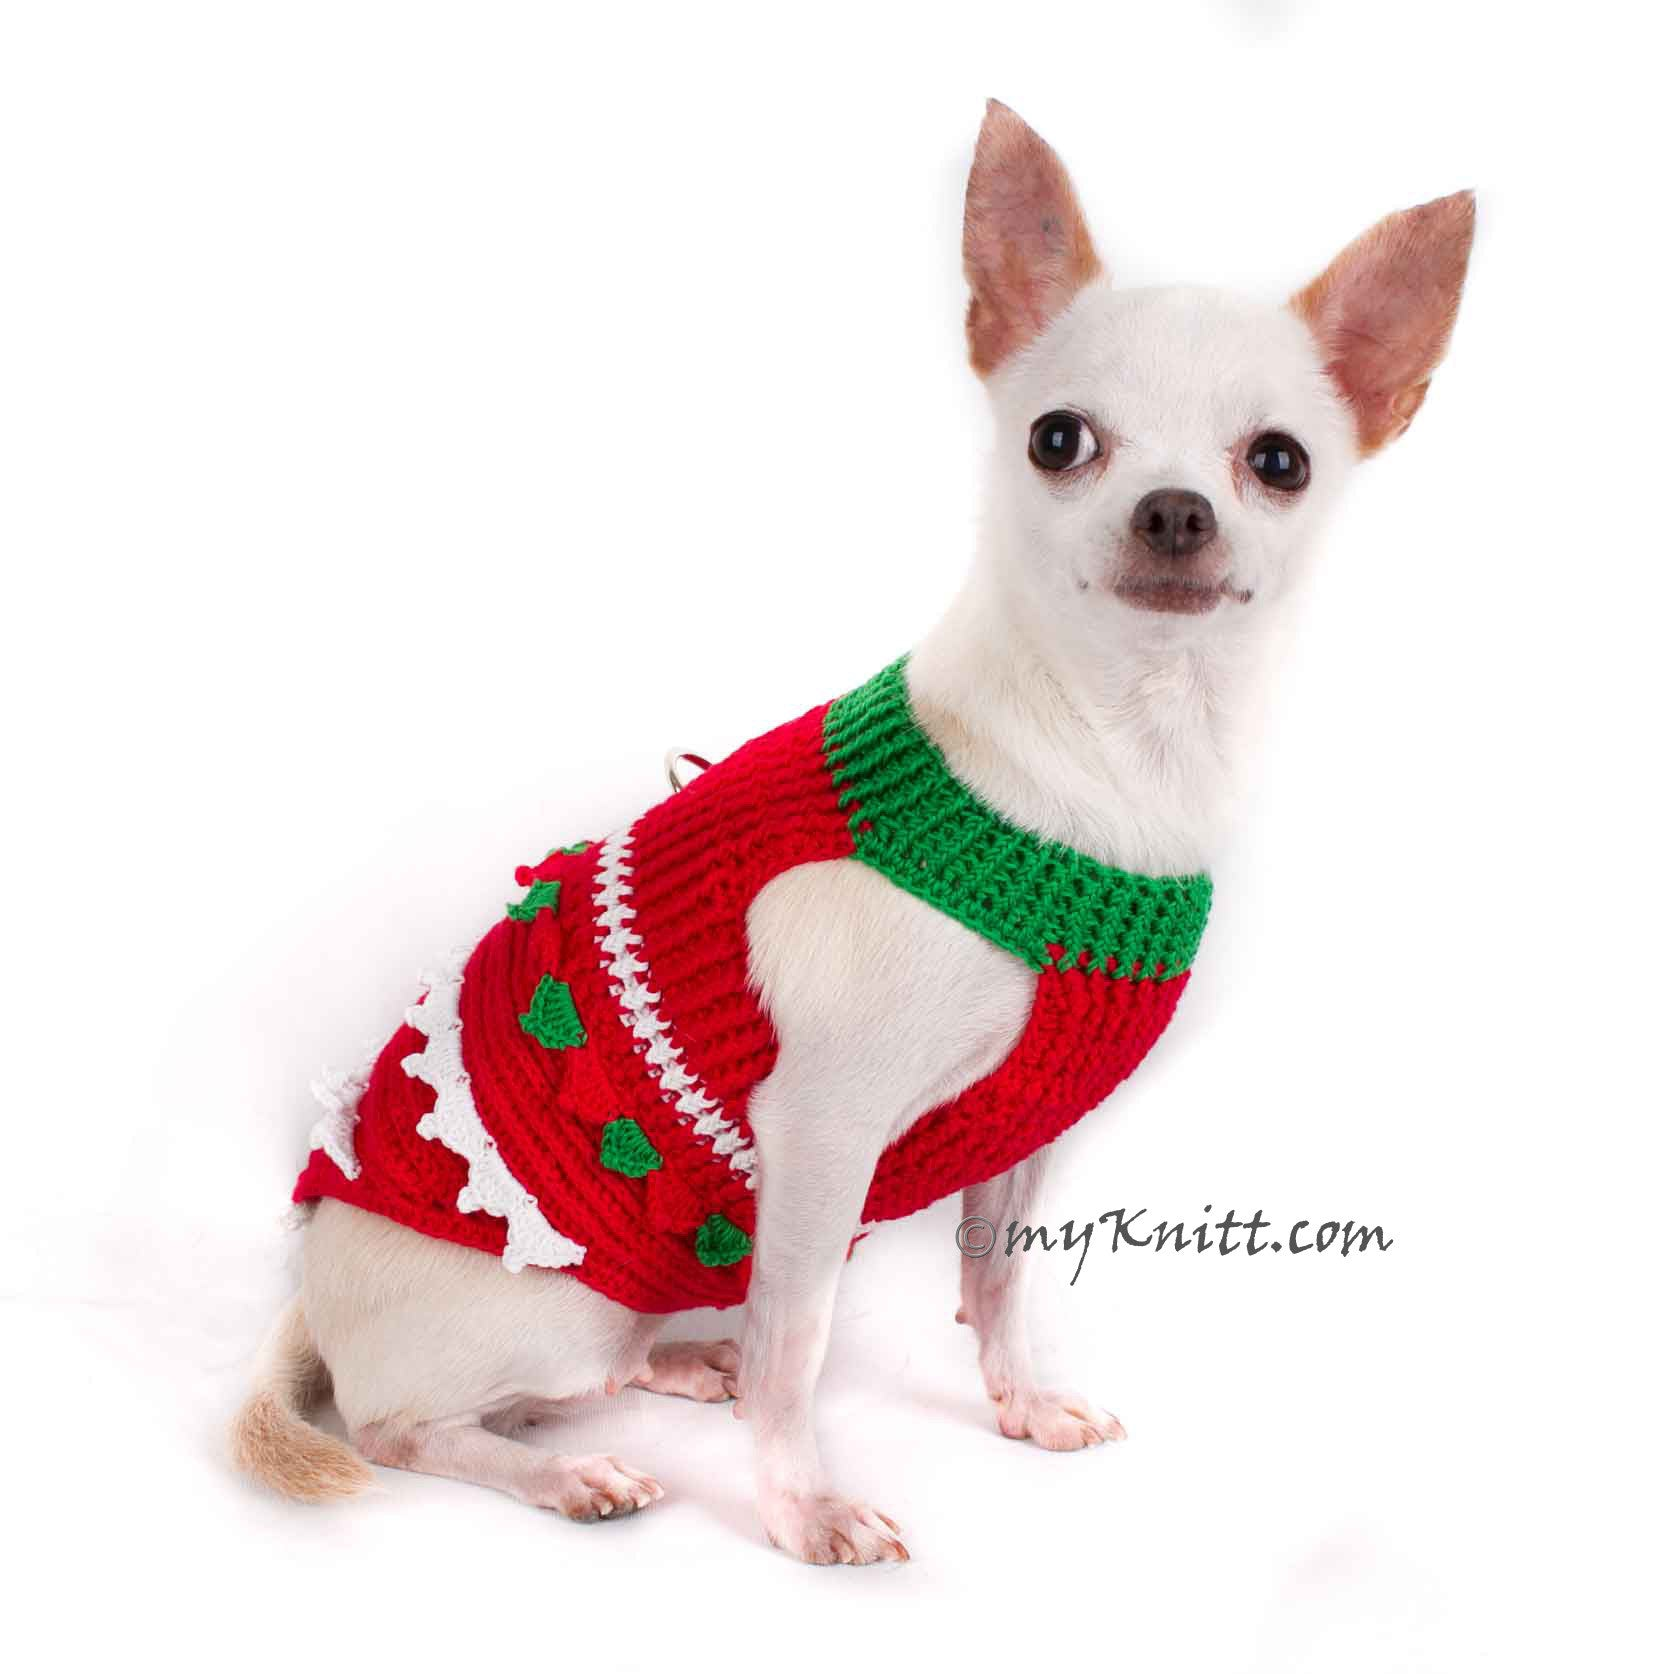 Christmas Tree Chihuahua Clothes Crochet Dog Sweater DF1 | myknitt